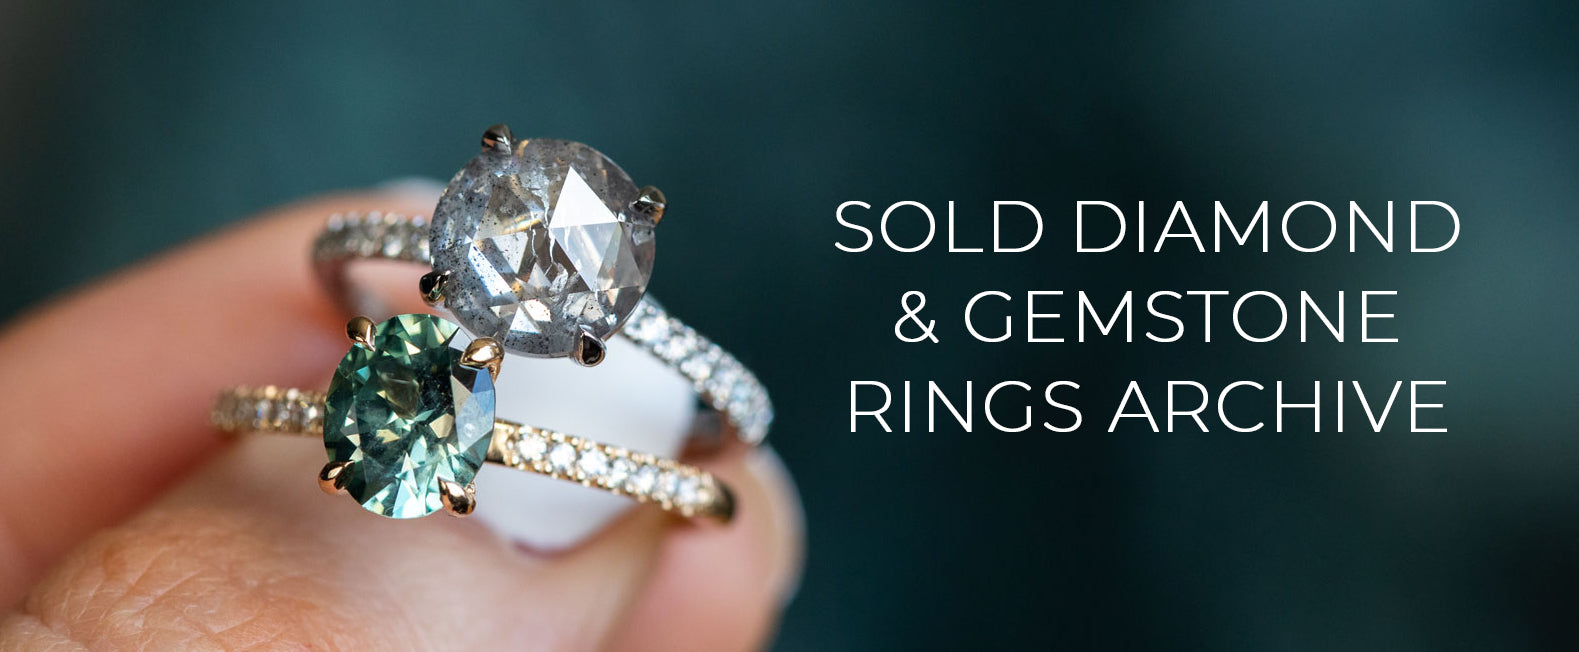 sold diamond and gemstone rings archive by anueva jewelry